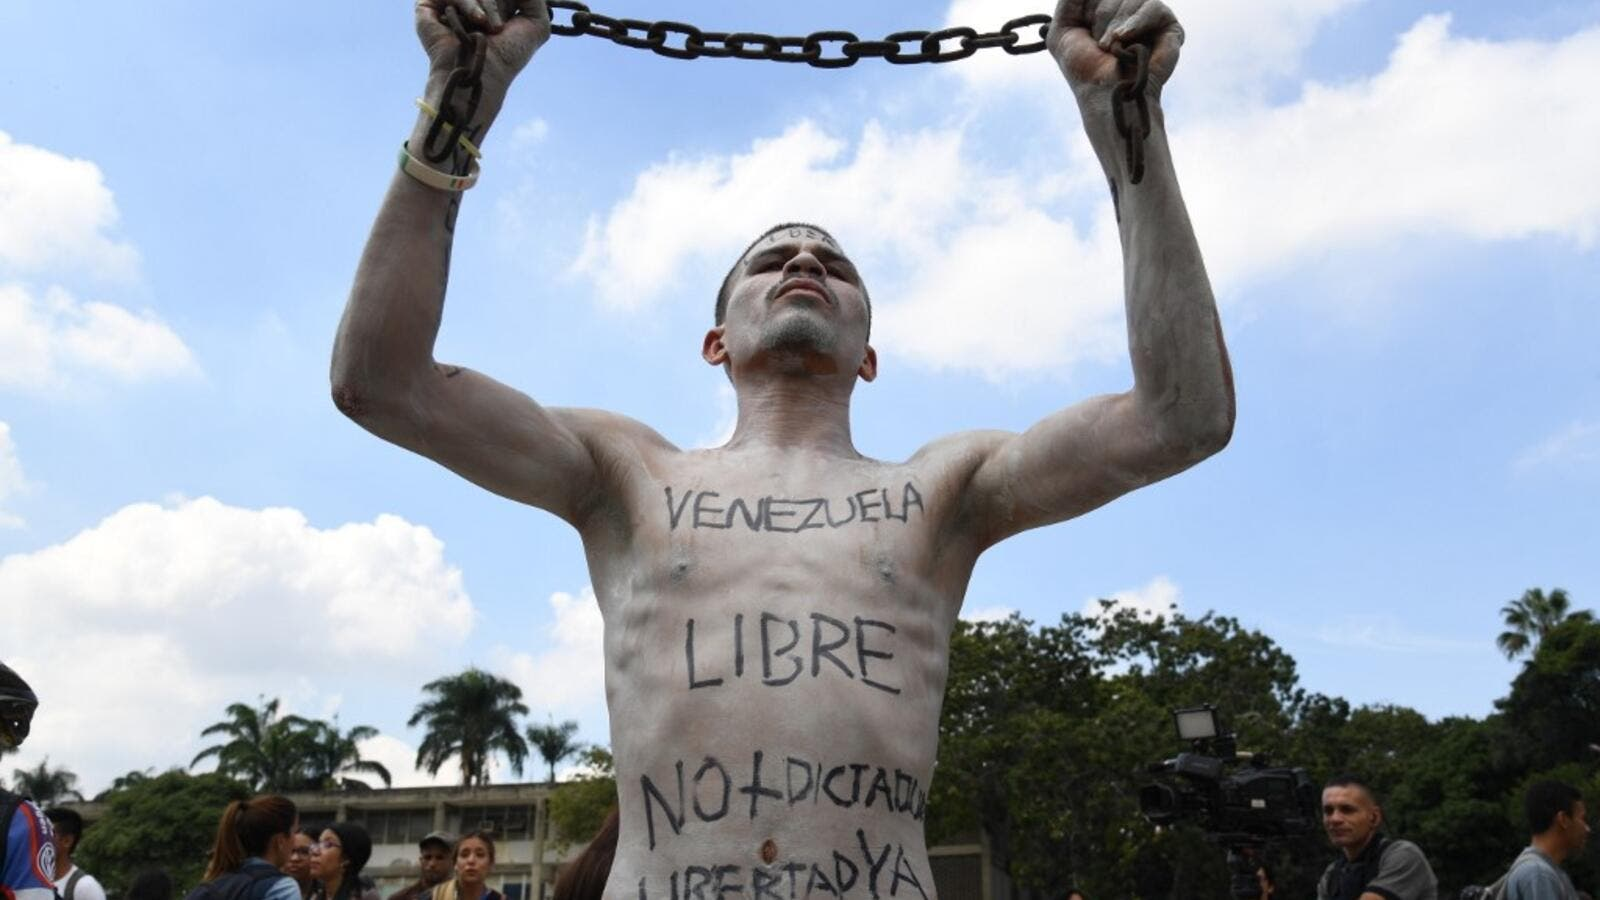 A university student holds a chain with his body painted during a protest against Venezuela's President Nicolas Maduro in Caracas on November 21, 2019. (Yuri CORTEZ / AFP)